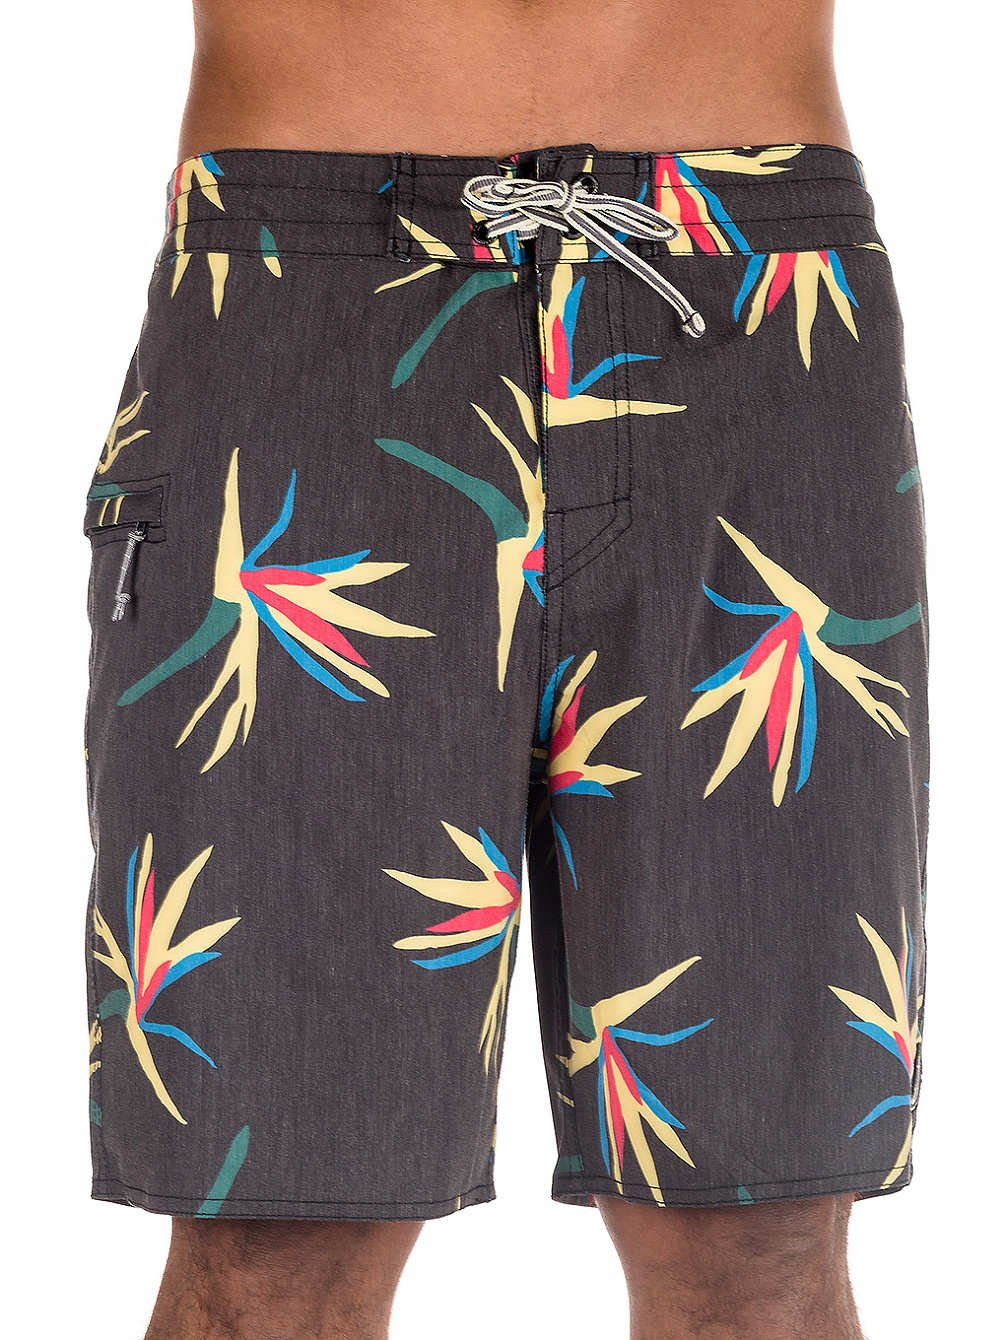 Captain Fin Herren Boardshorts Jungle Jam Boardshorts